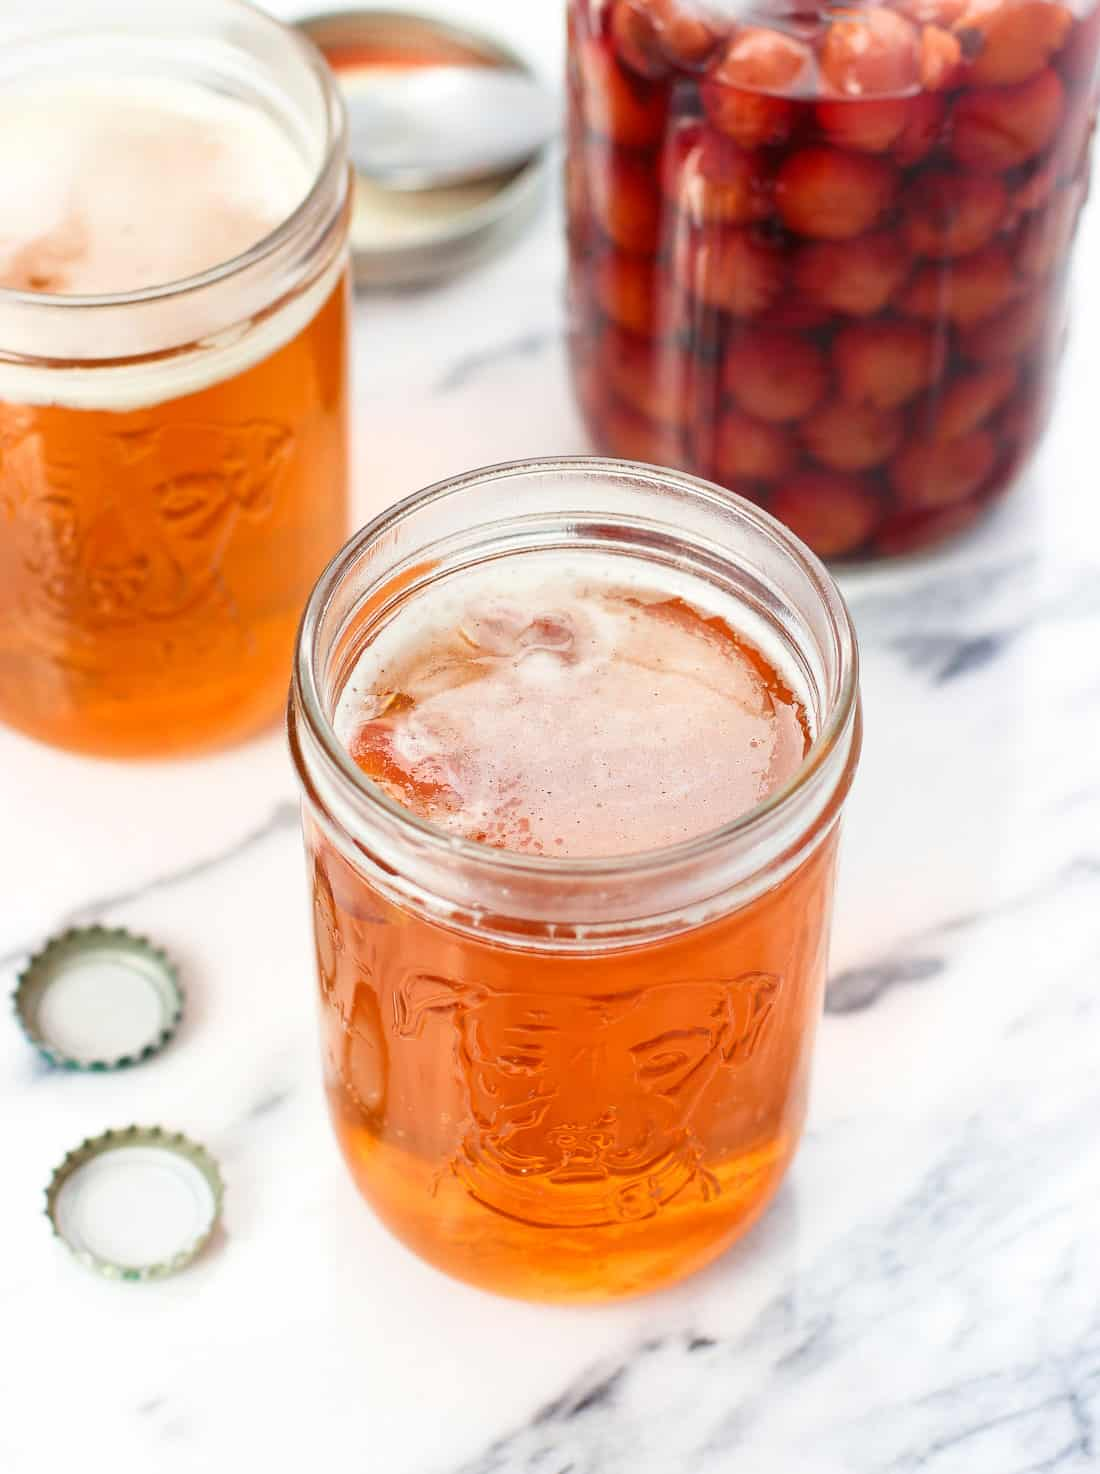 This maraschino snakebite is a fun beer and cider drink with a twist. Homemade maraschino cherries (and some of their liquid) are added for an extra layer of flavor.